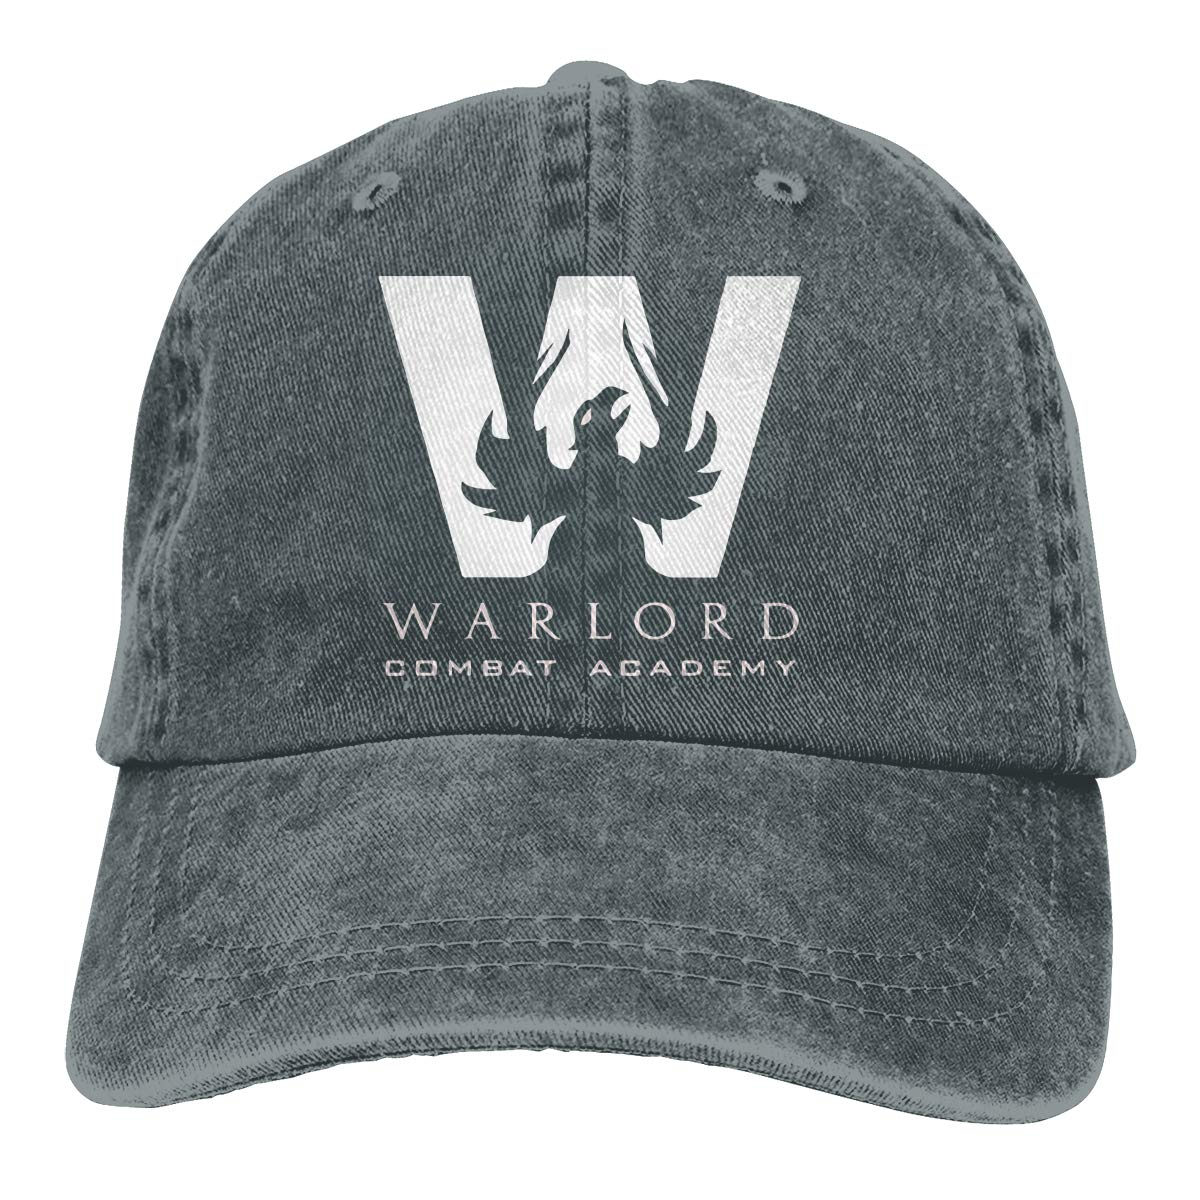 Warlord Combat Academy Adult Trendy Cowboy Hat Sun Hat Adjustable Baseball Cap